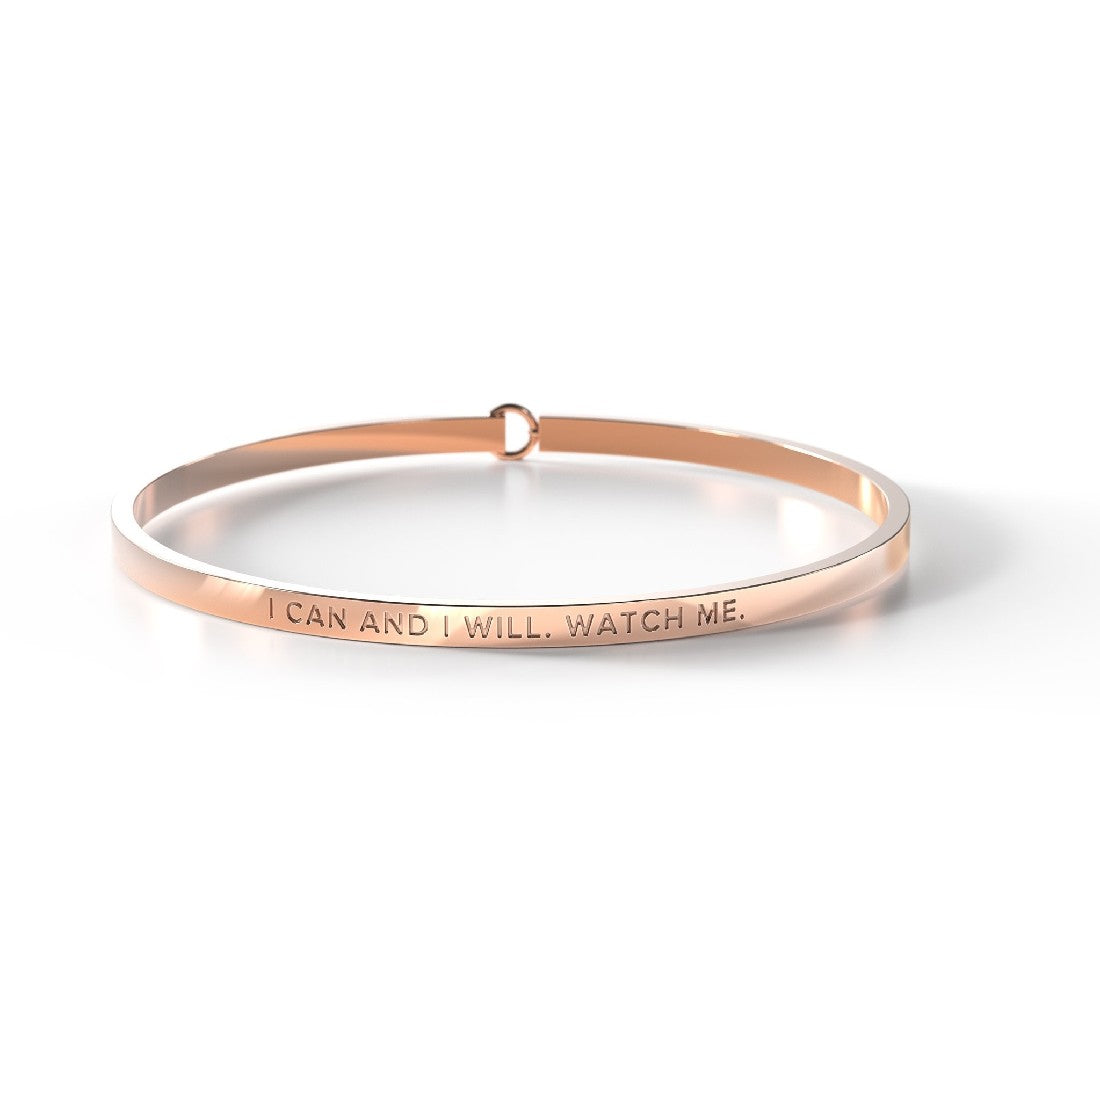 BE BANGLE I CAN AND I WILL. WATCH ME. ROSE REGULAR